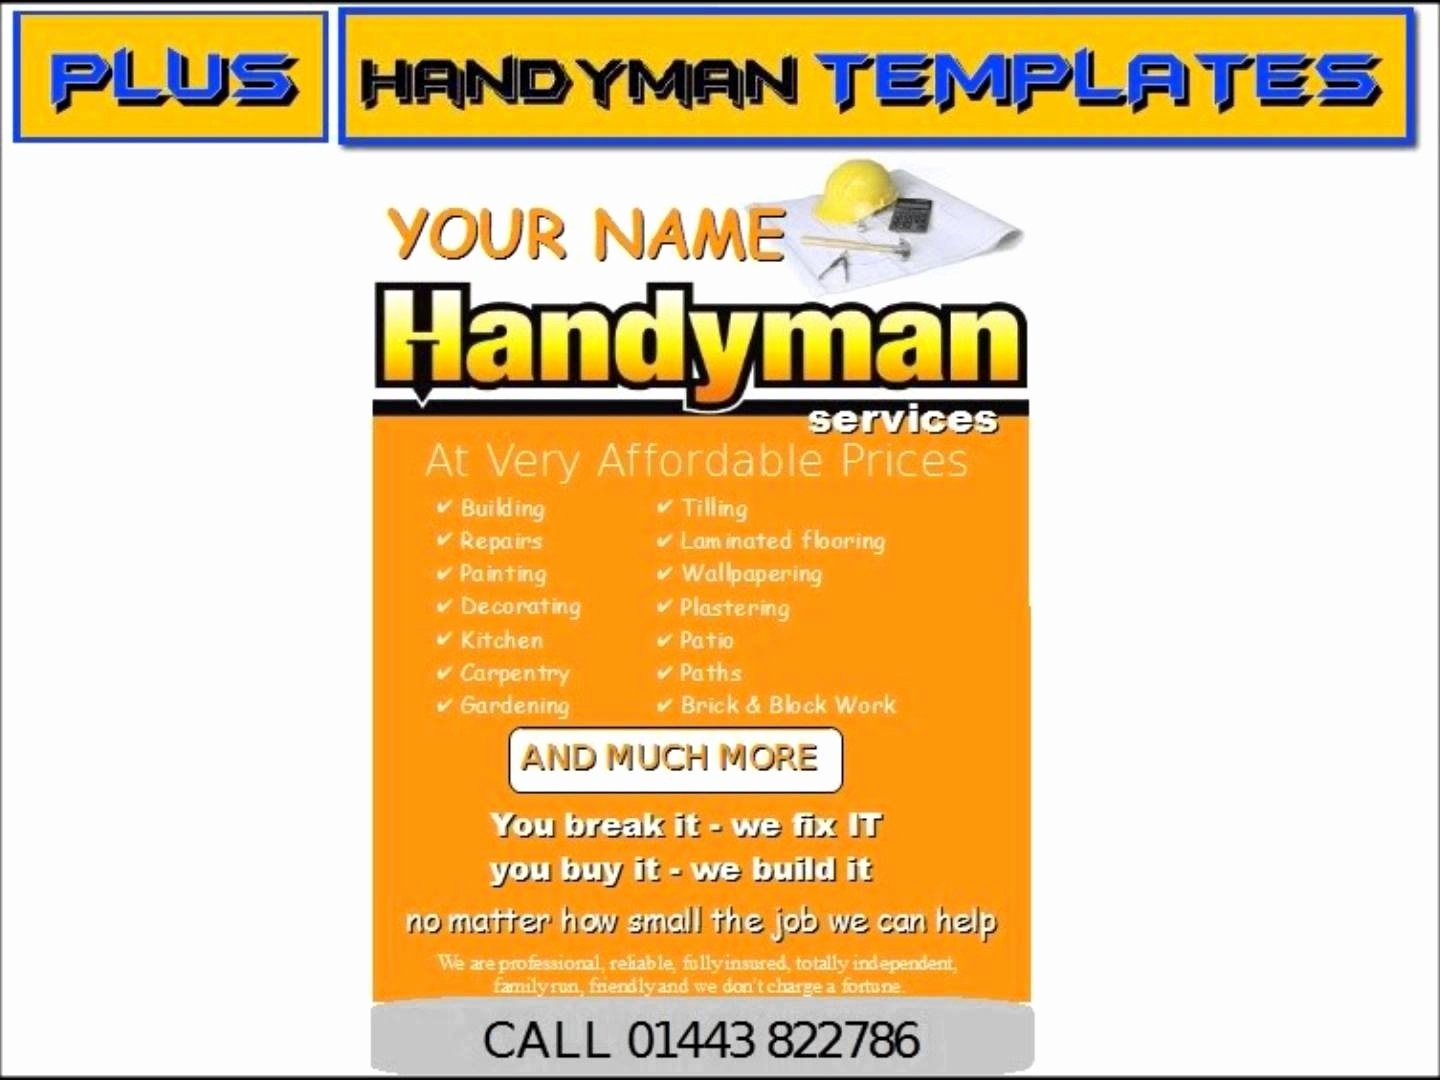 Handyman Business Cards Templates Free Elegant Handyman Business Cards Samples Handyman Business Cards Samples